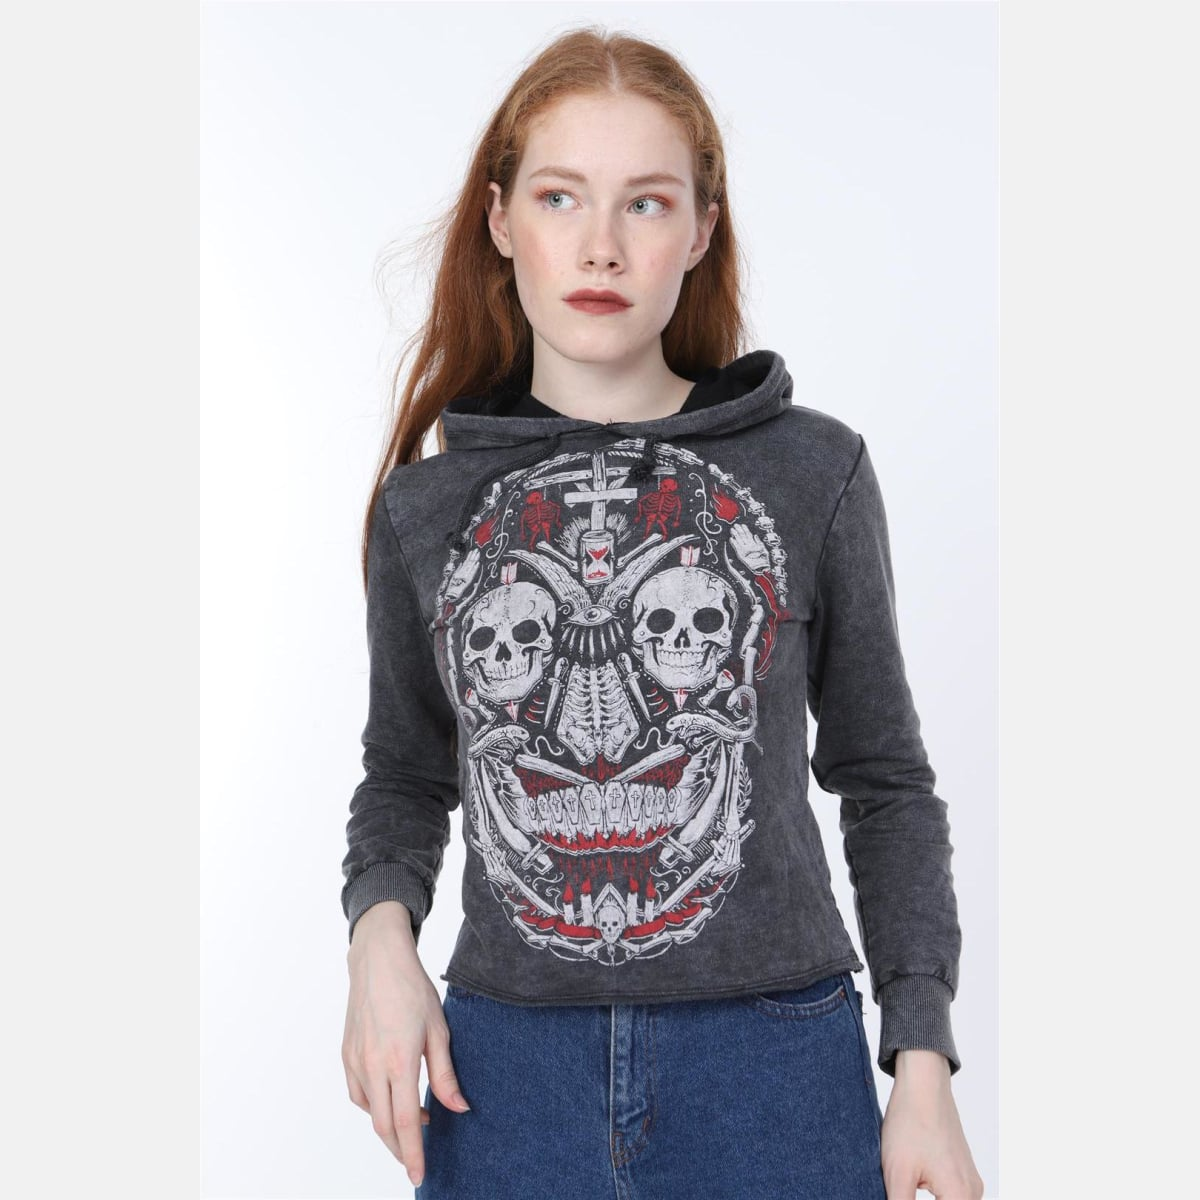 Black Anthracite Stone Washed Faded New Skull Printed Cotton Women Crop Top Hoodie S-PONDER